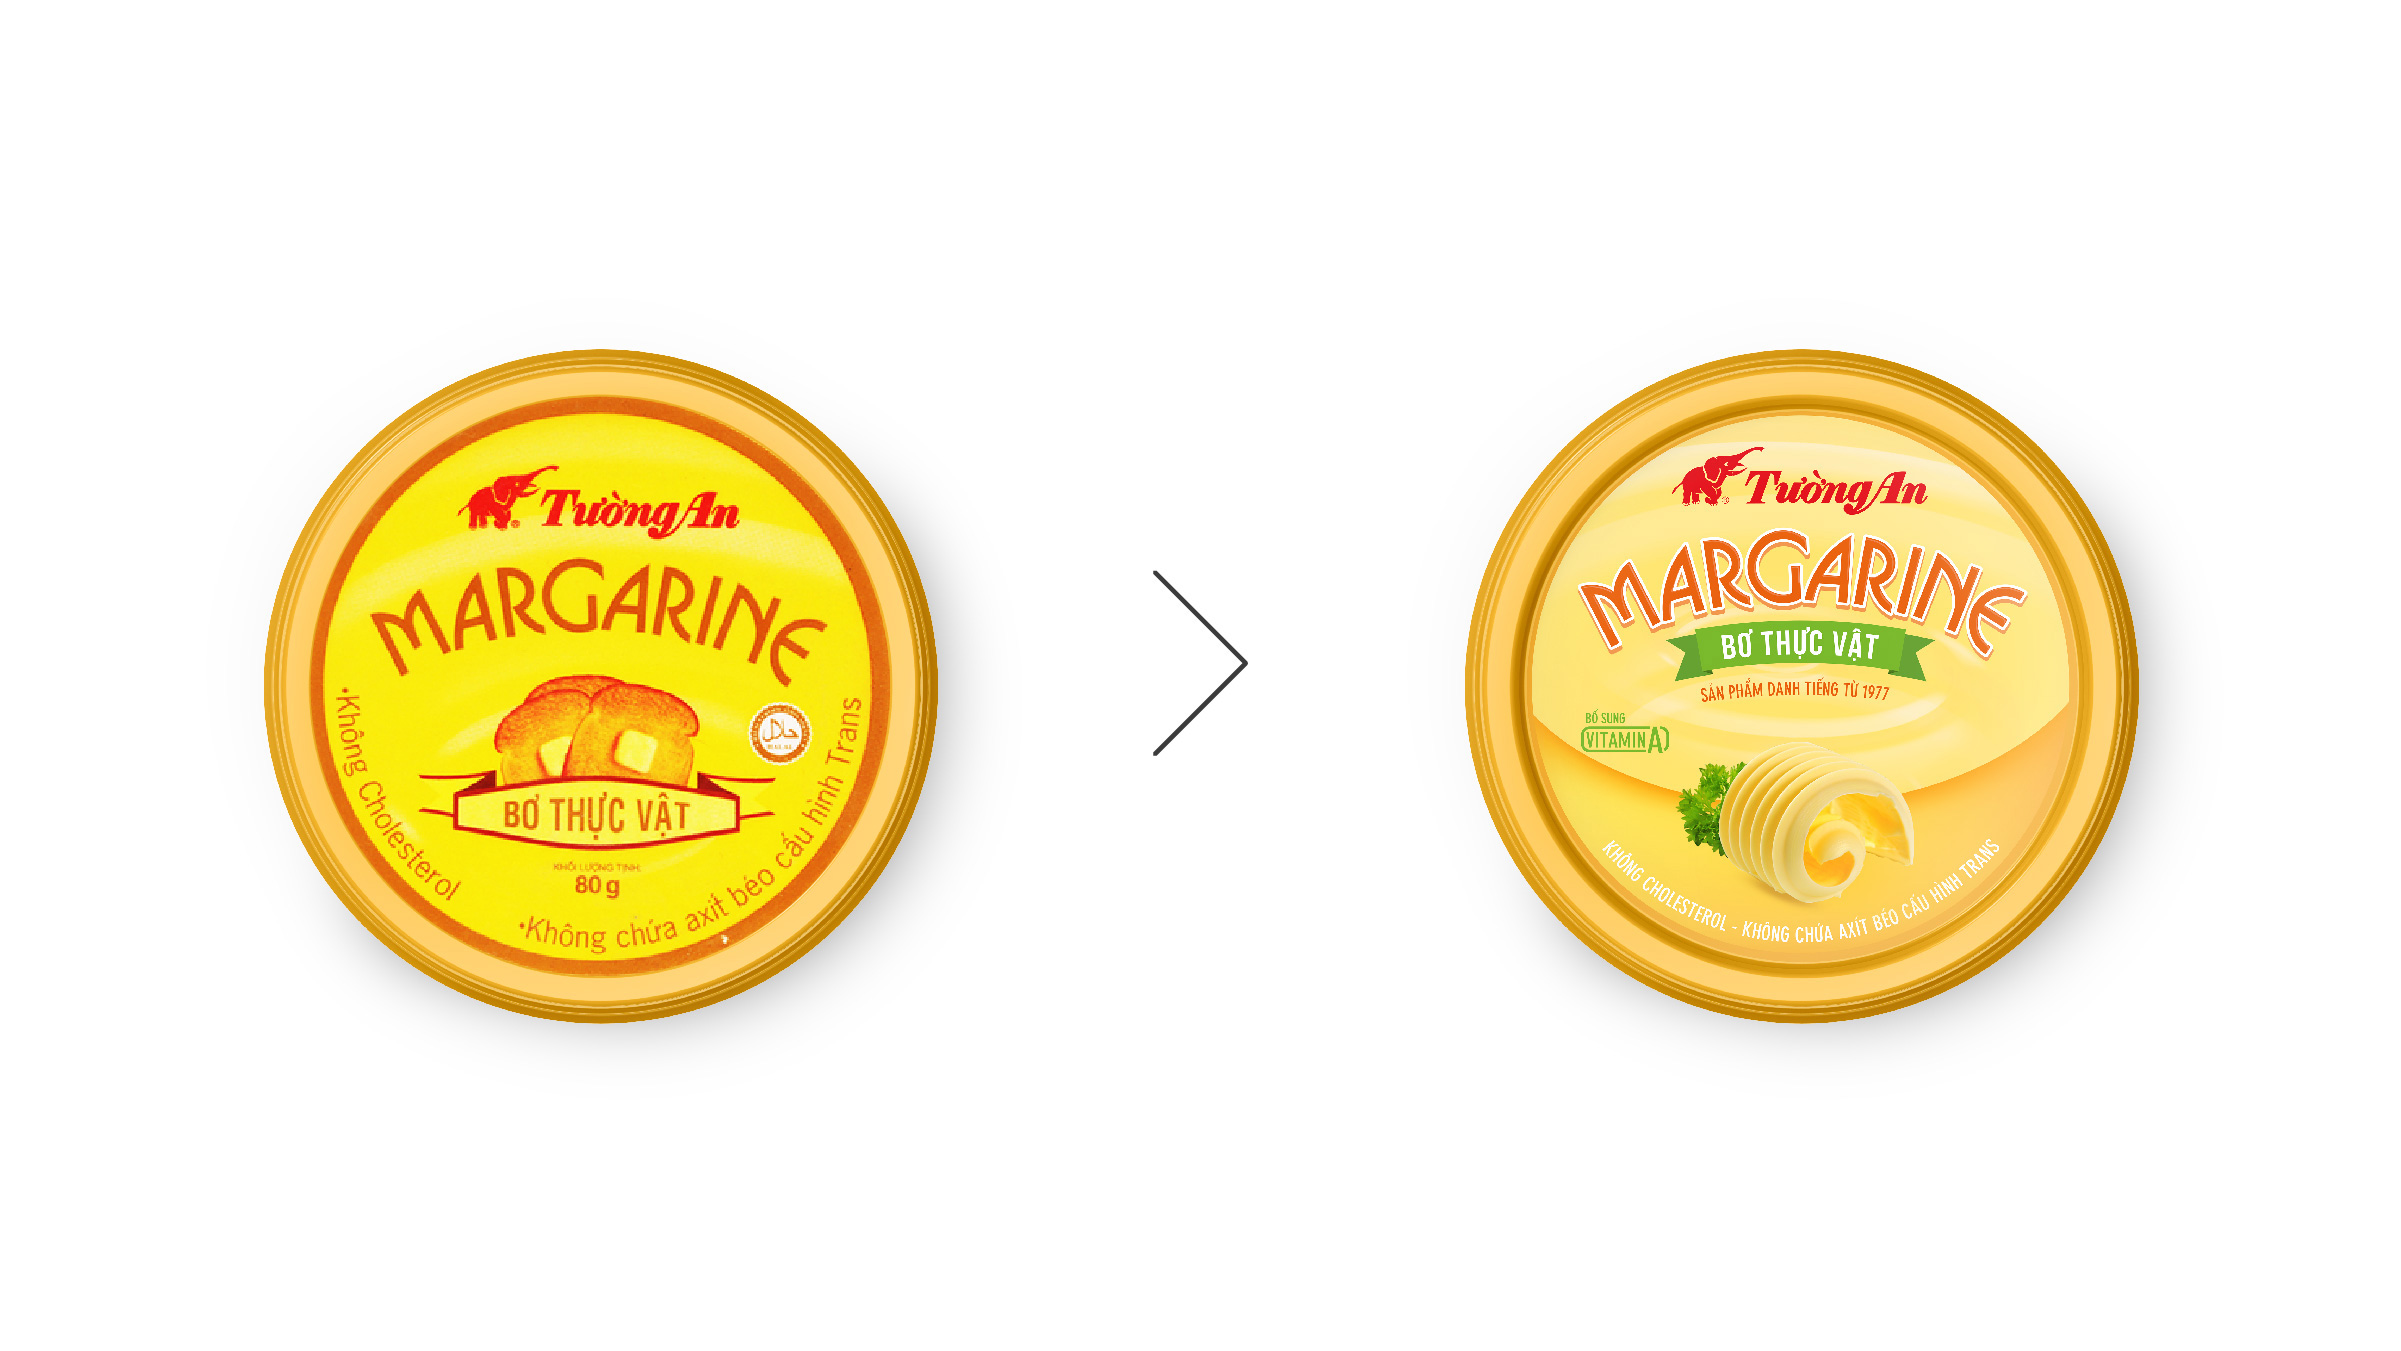 Packaging Design The Circle Branding Partners